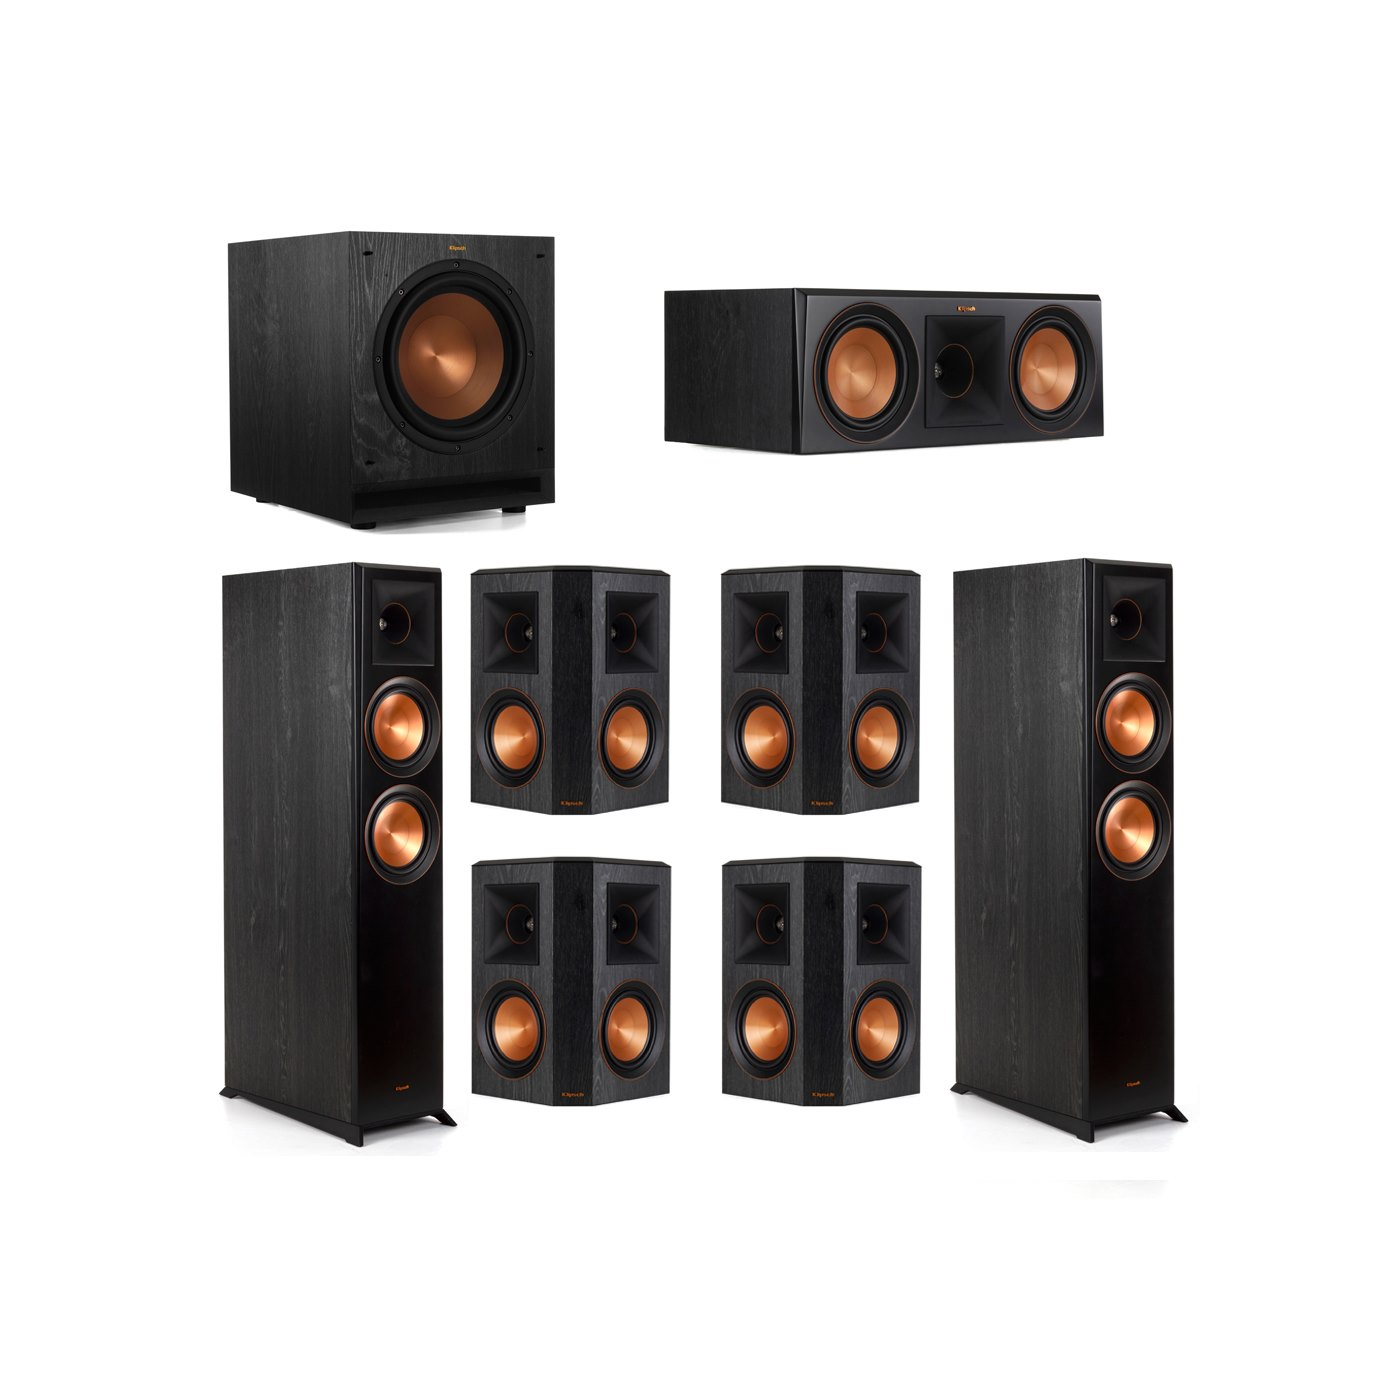 Klipsch 7.1 System with 2 RP-6000F Floorstanding Speakers, 1 Klipsch RP-600C Center Speaker, 4 Klipsch RP-502S Surround Speakers, 1 Klipsch SPL-100 Subwoofer